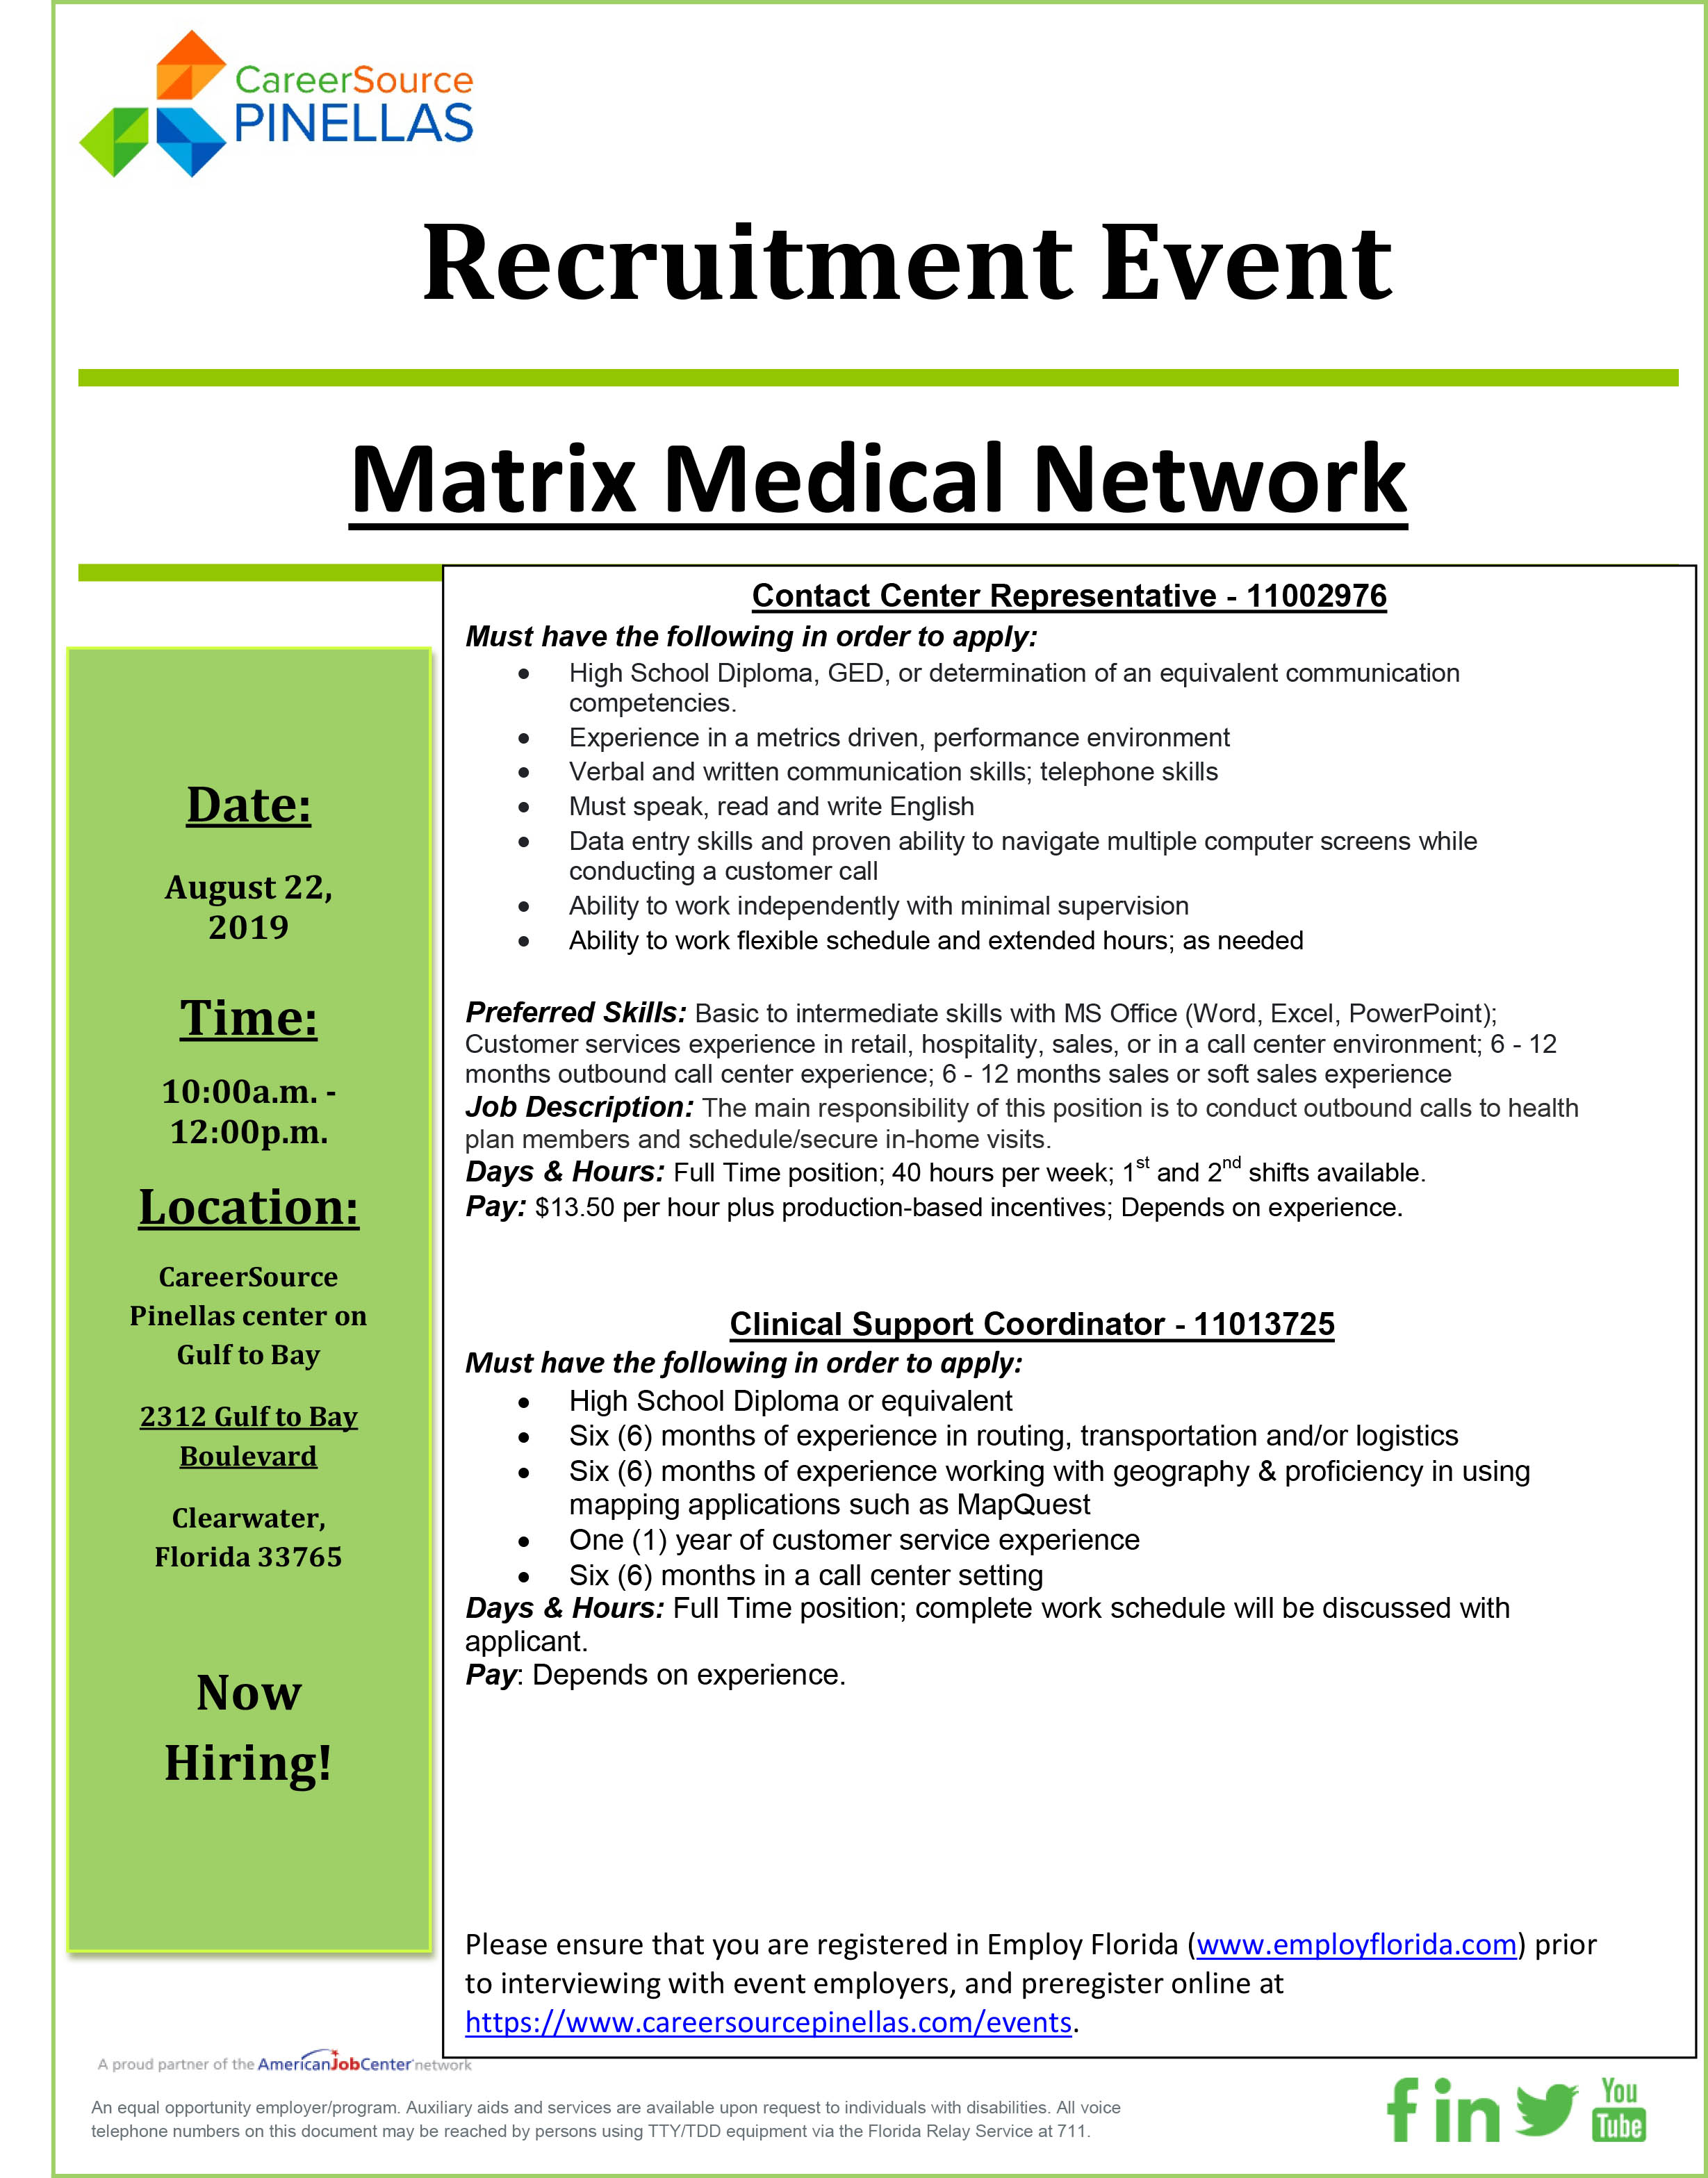 Matrix Medical On-Site 8.22.2019.jpg